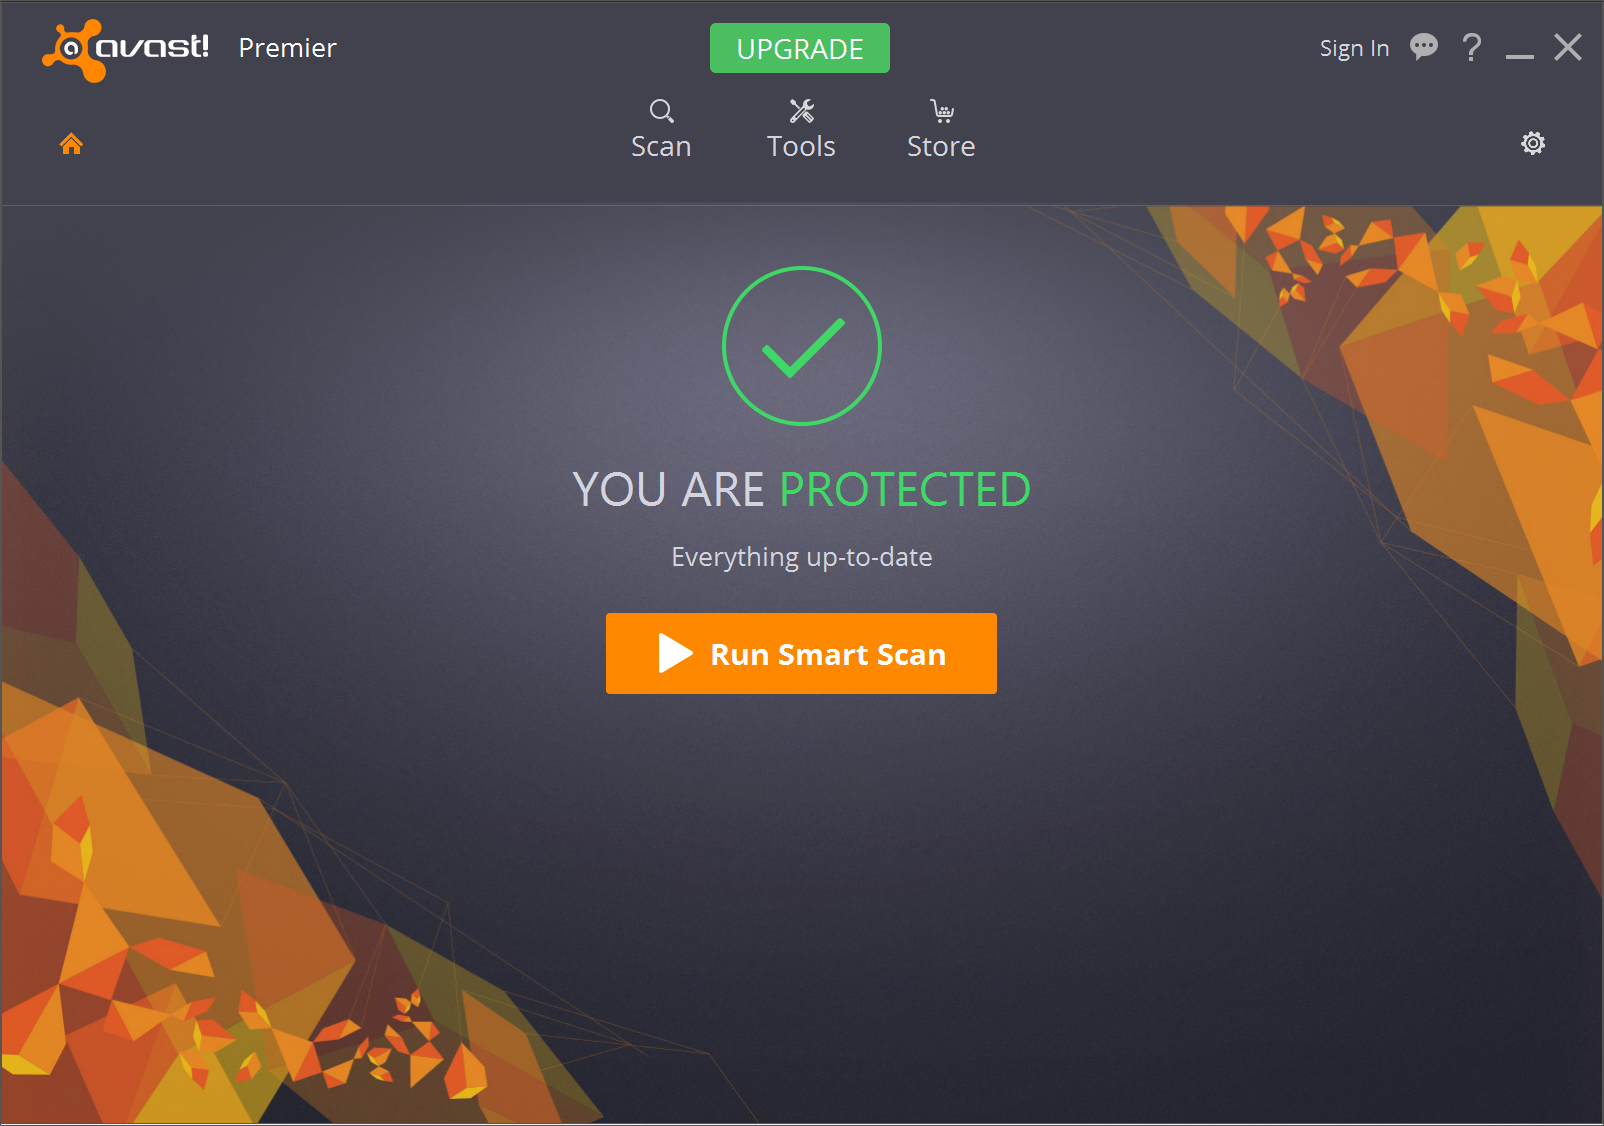 How to upgrade Avast antivirus to premium?